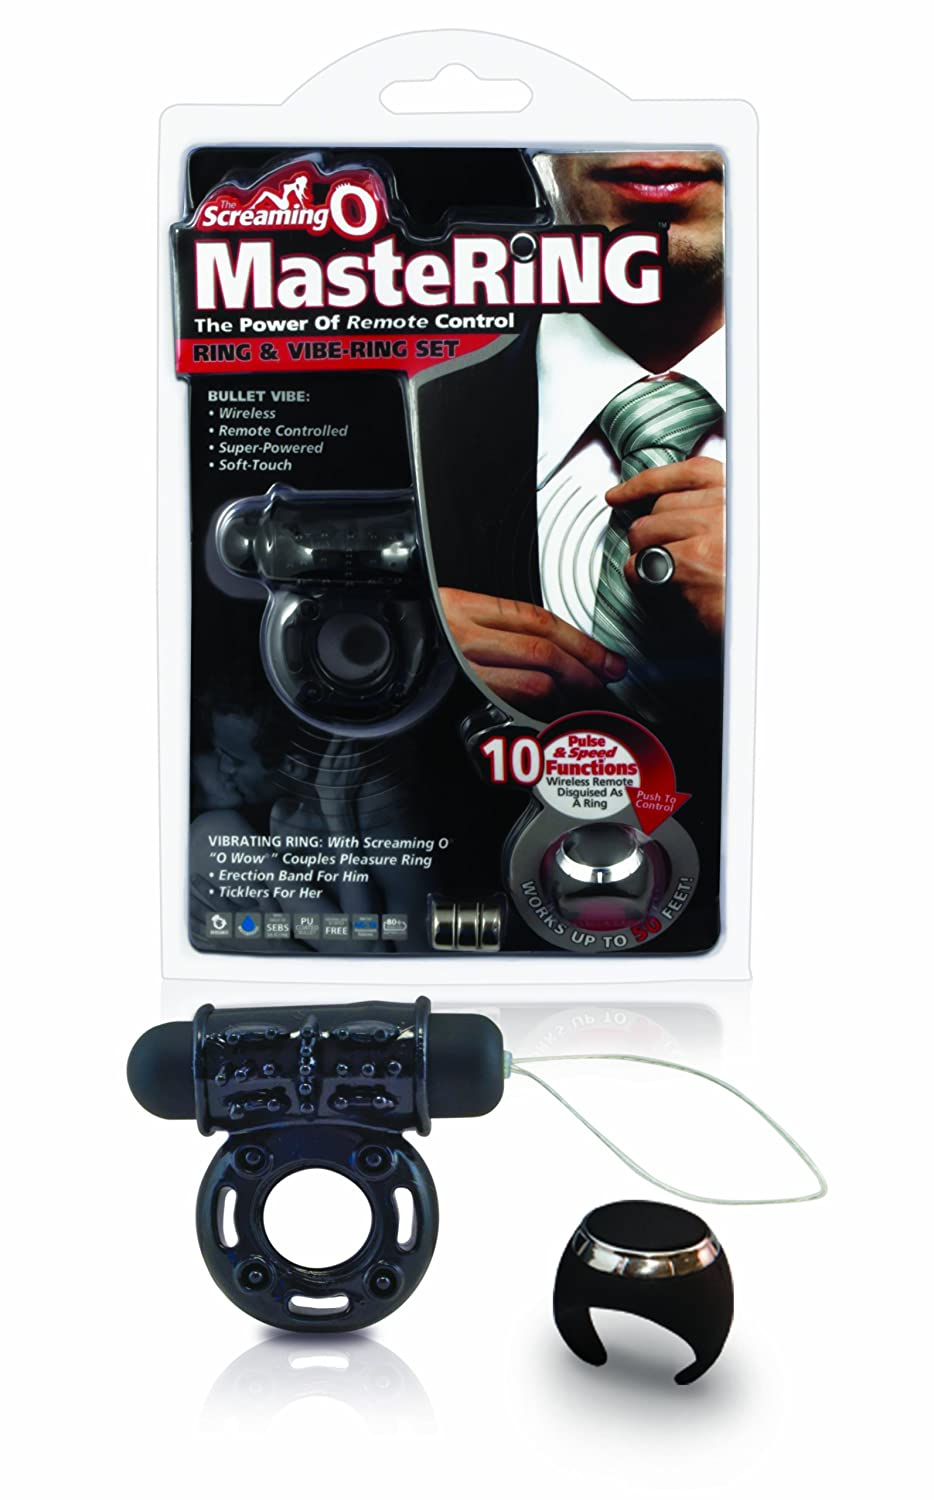 Screaming O Mastering Ring and Vibe Set